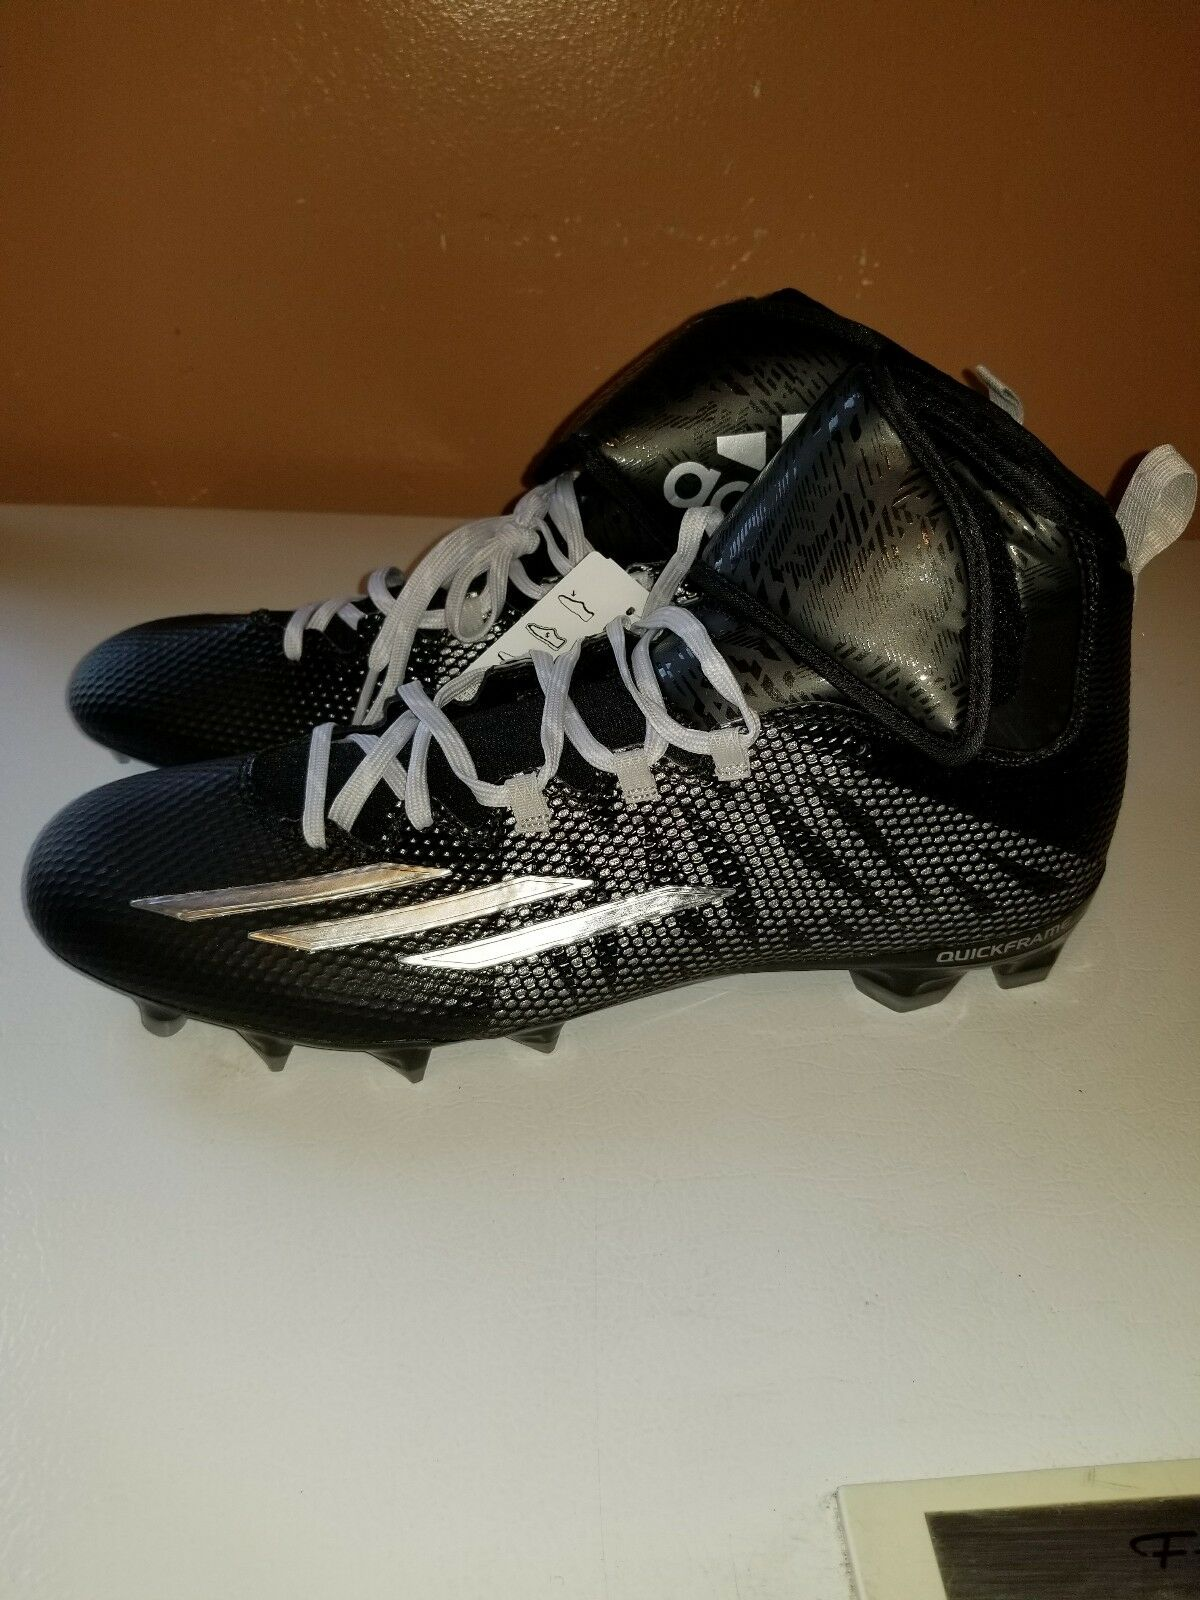 Adidas Dual Threat Mid Techfit Athletic Sport Football Cleats S84836 Men's Sz 14 The latest discount shoes for men and women